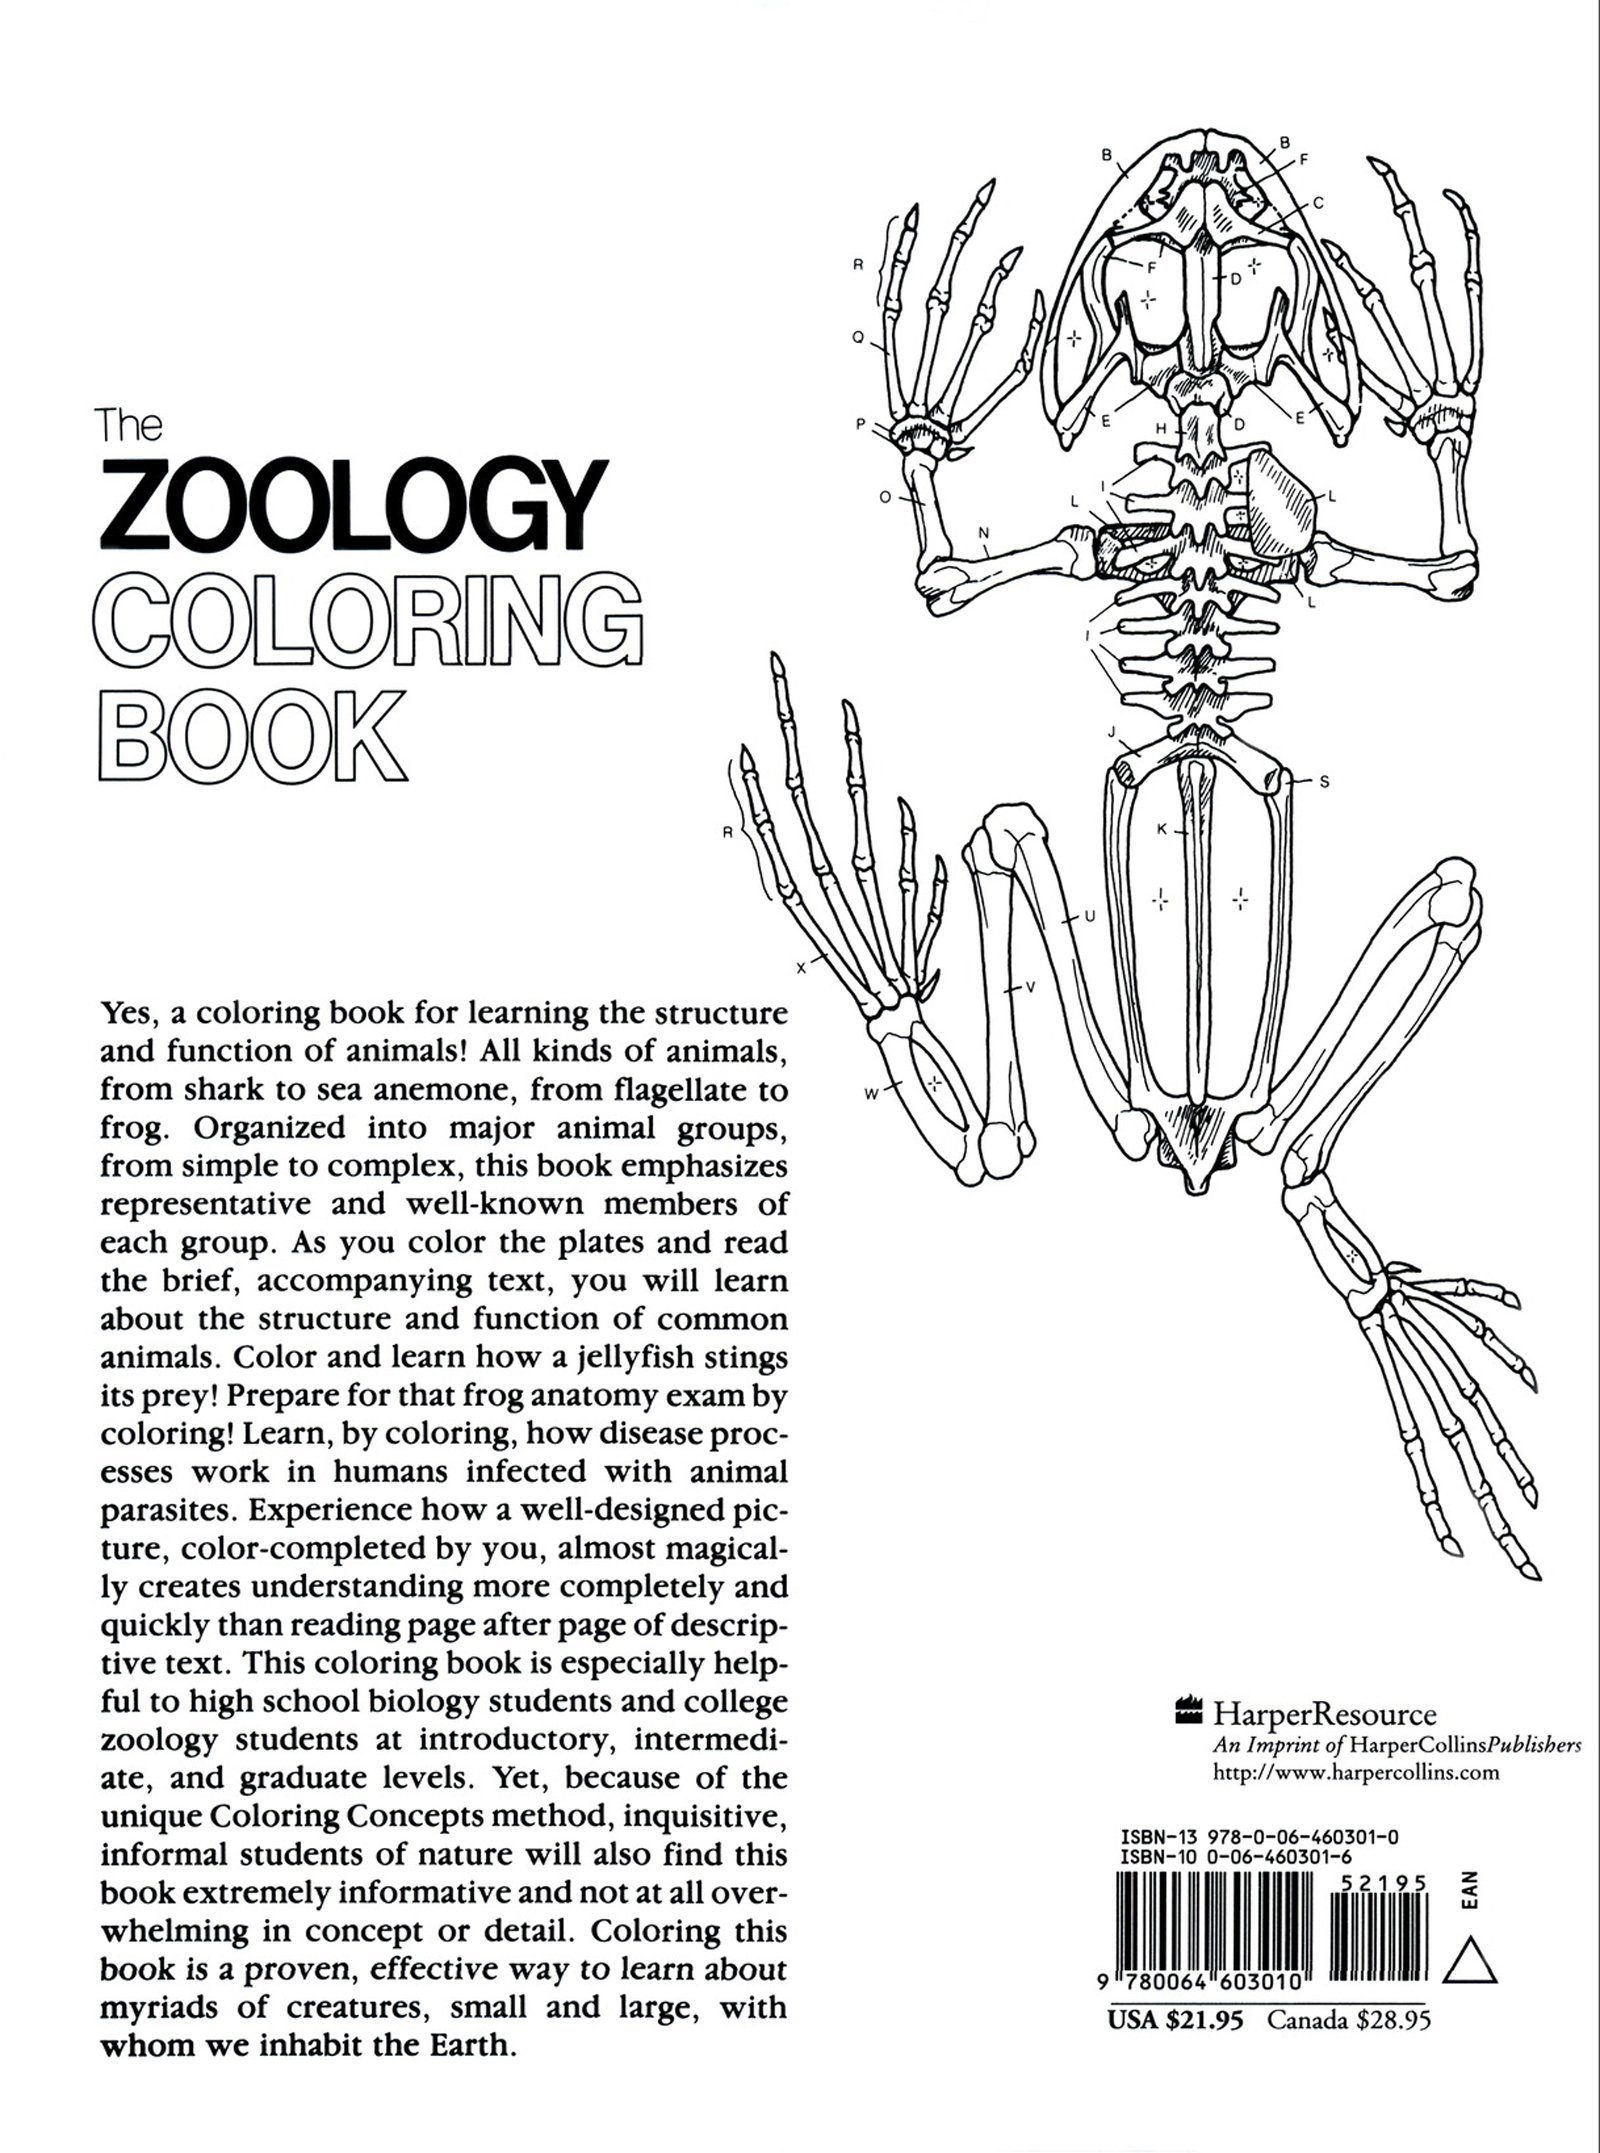 The Zoology Colouring Book College Outline S Amazoncouk L M Elson Cinthea Vadala Jacquelyn Giuffre 9780064603010 Books